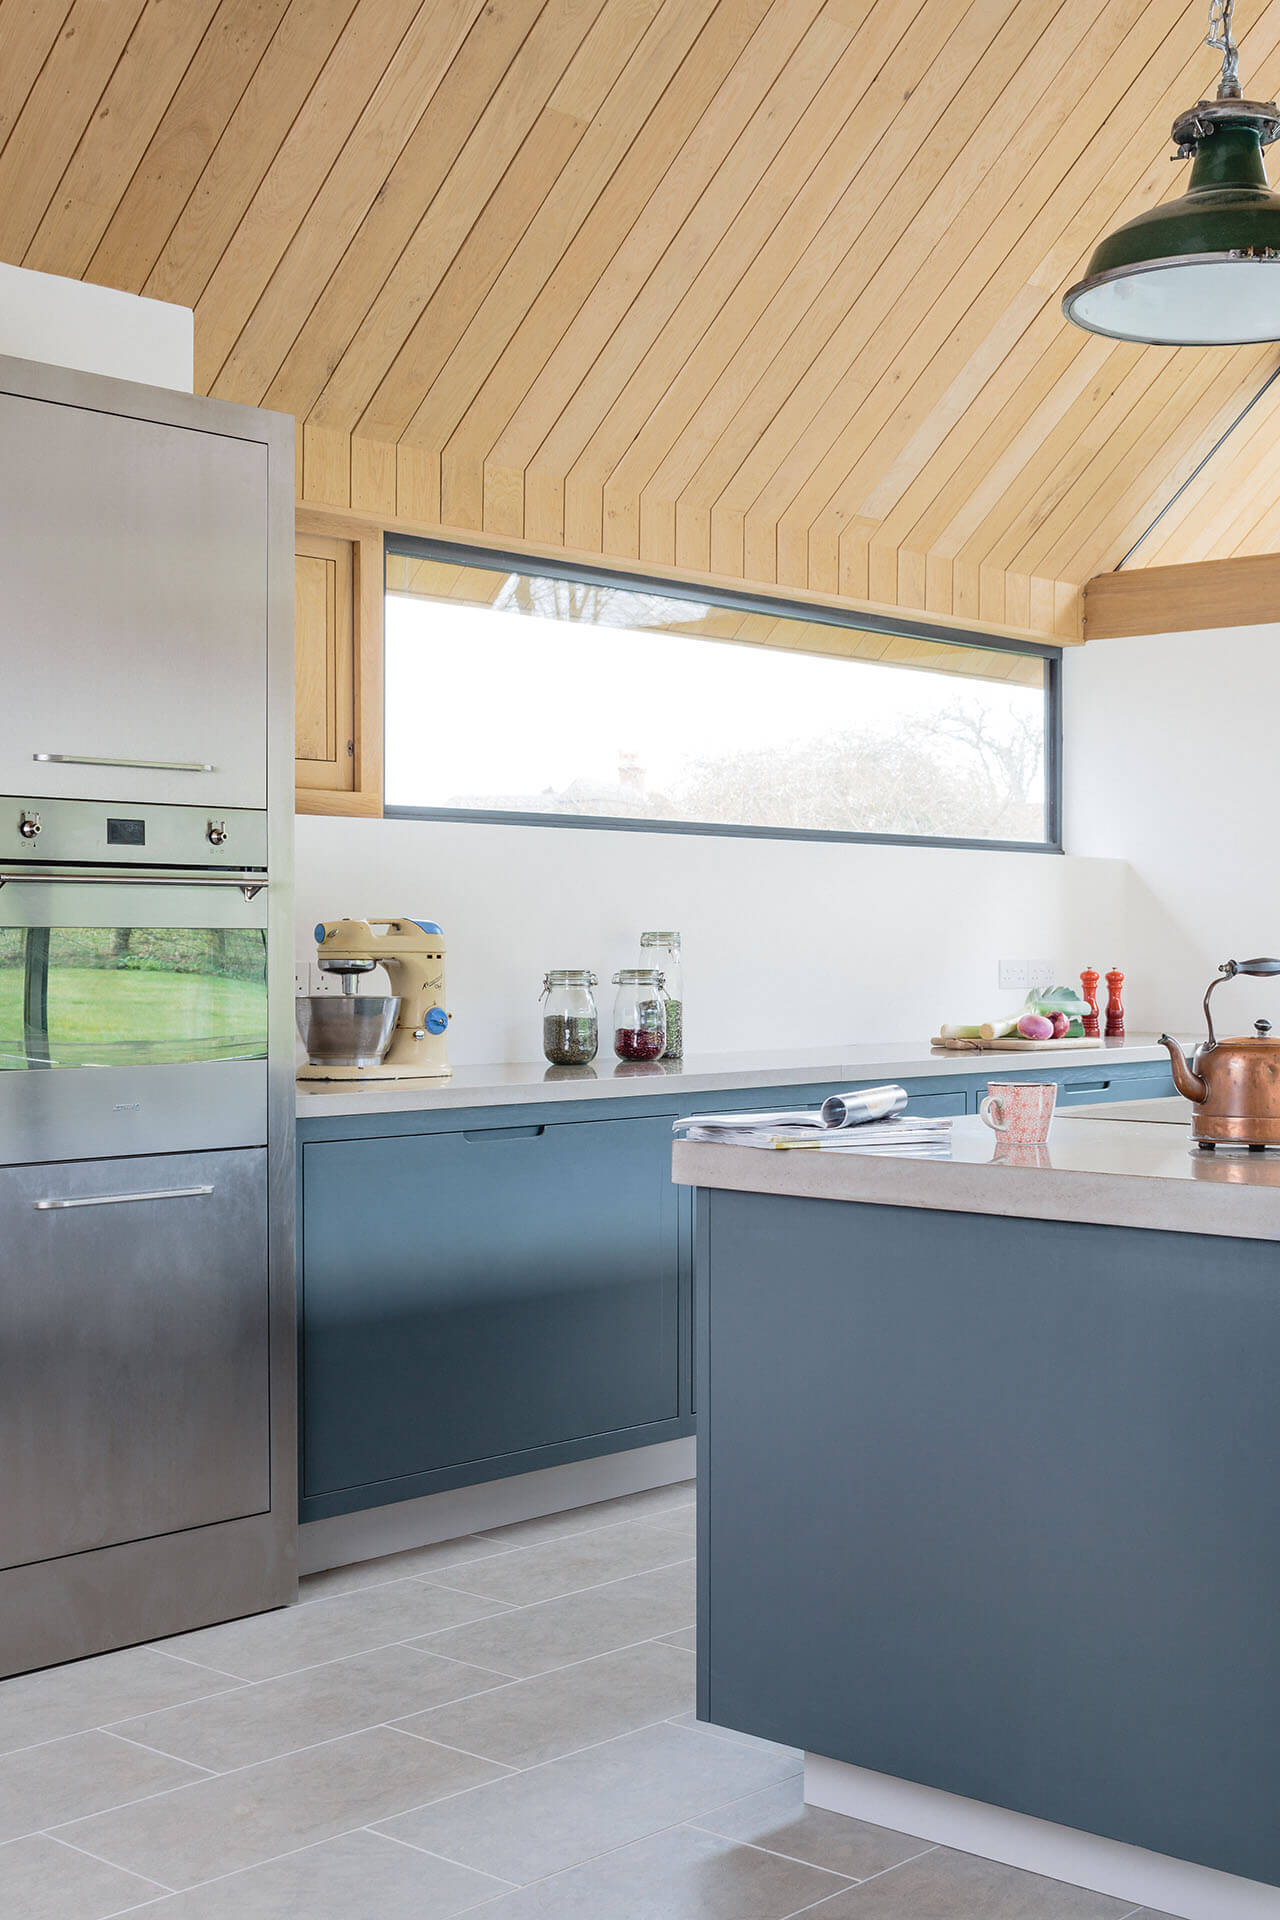 The vine house modern kitchen with conrete worktops and natural stone flooring